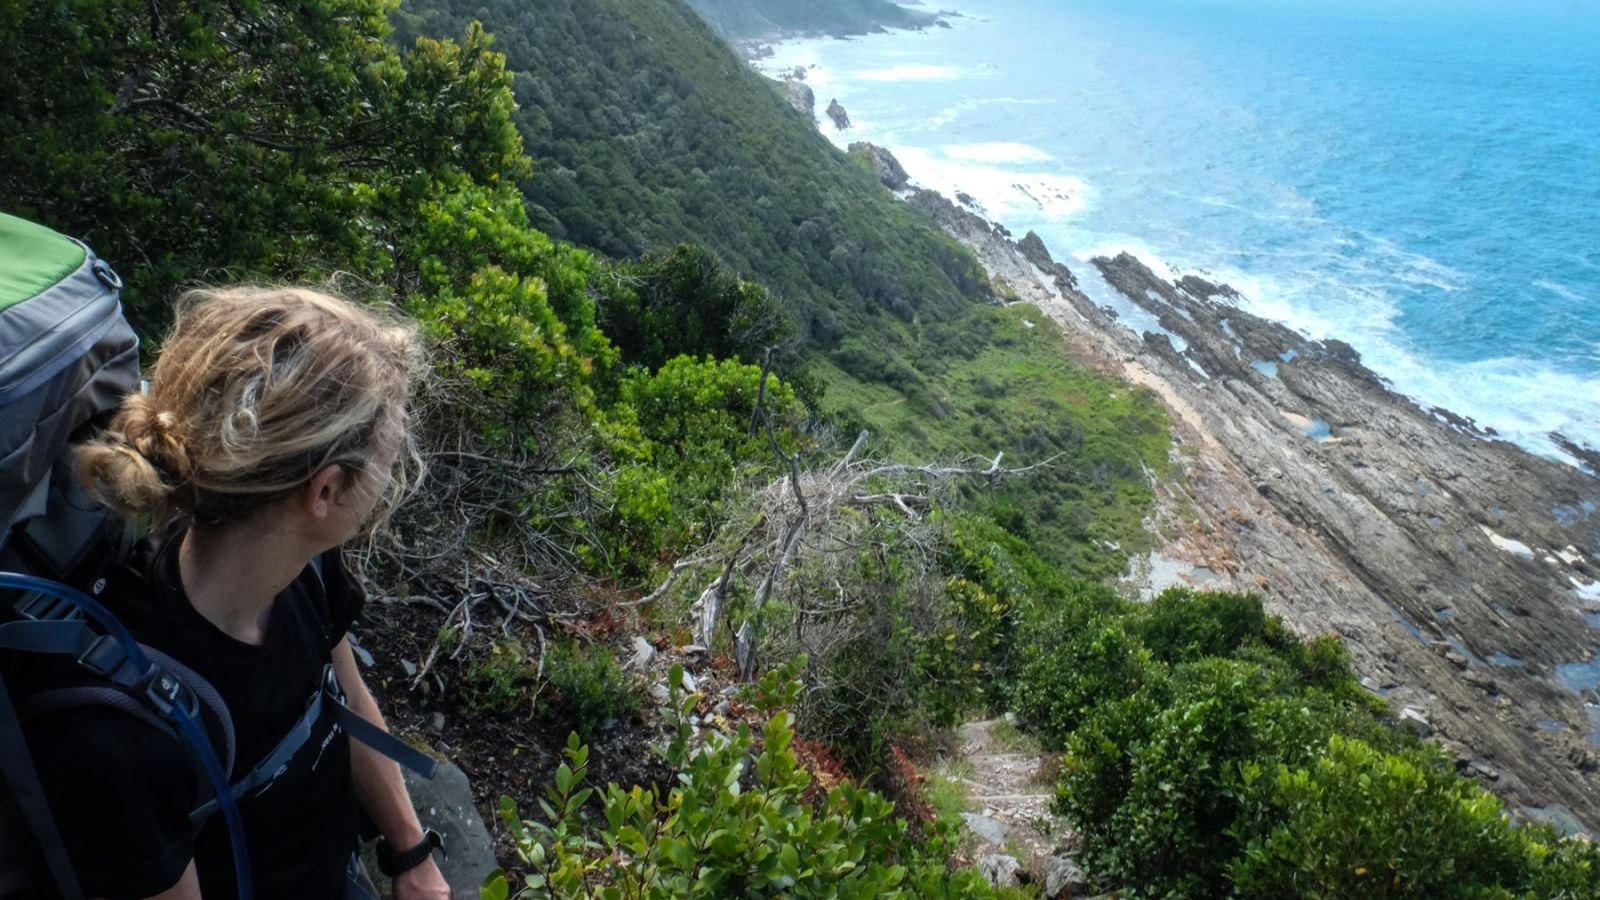 a photo of a hiker overlooking the coast along the otter trail.